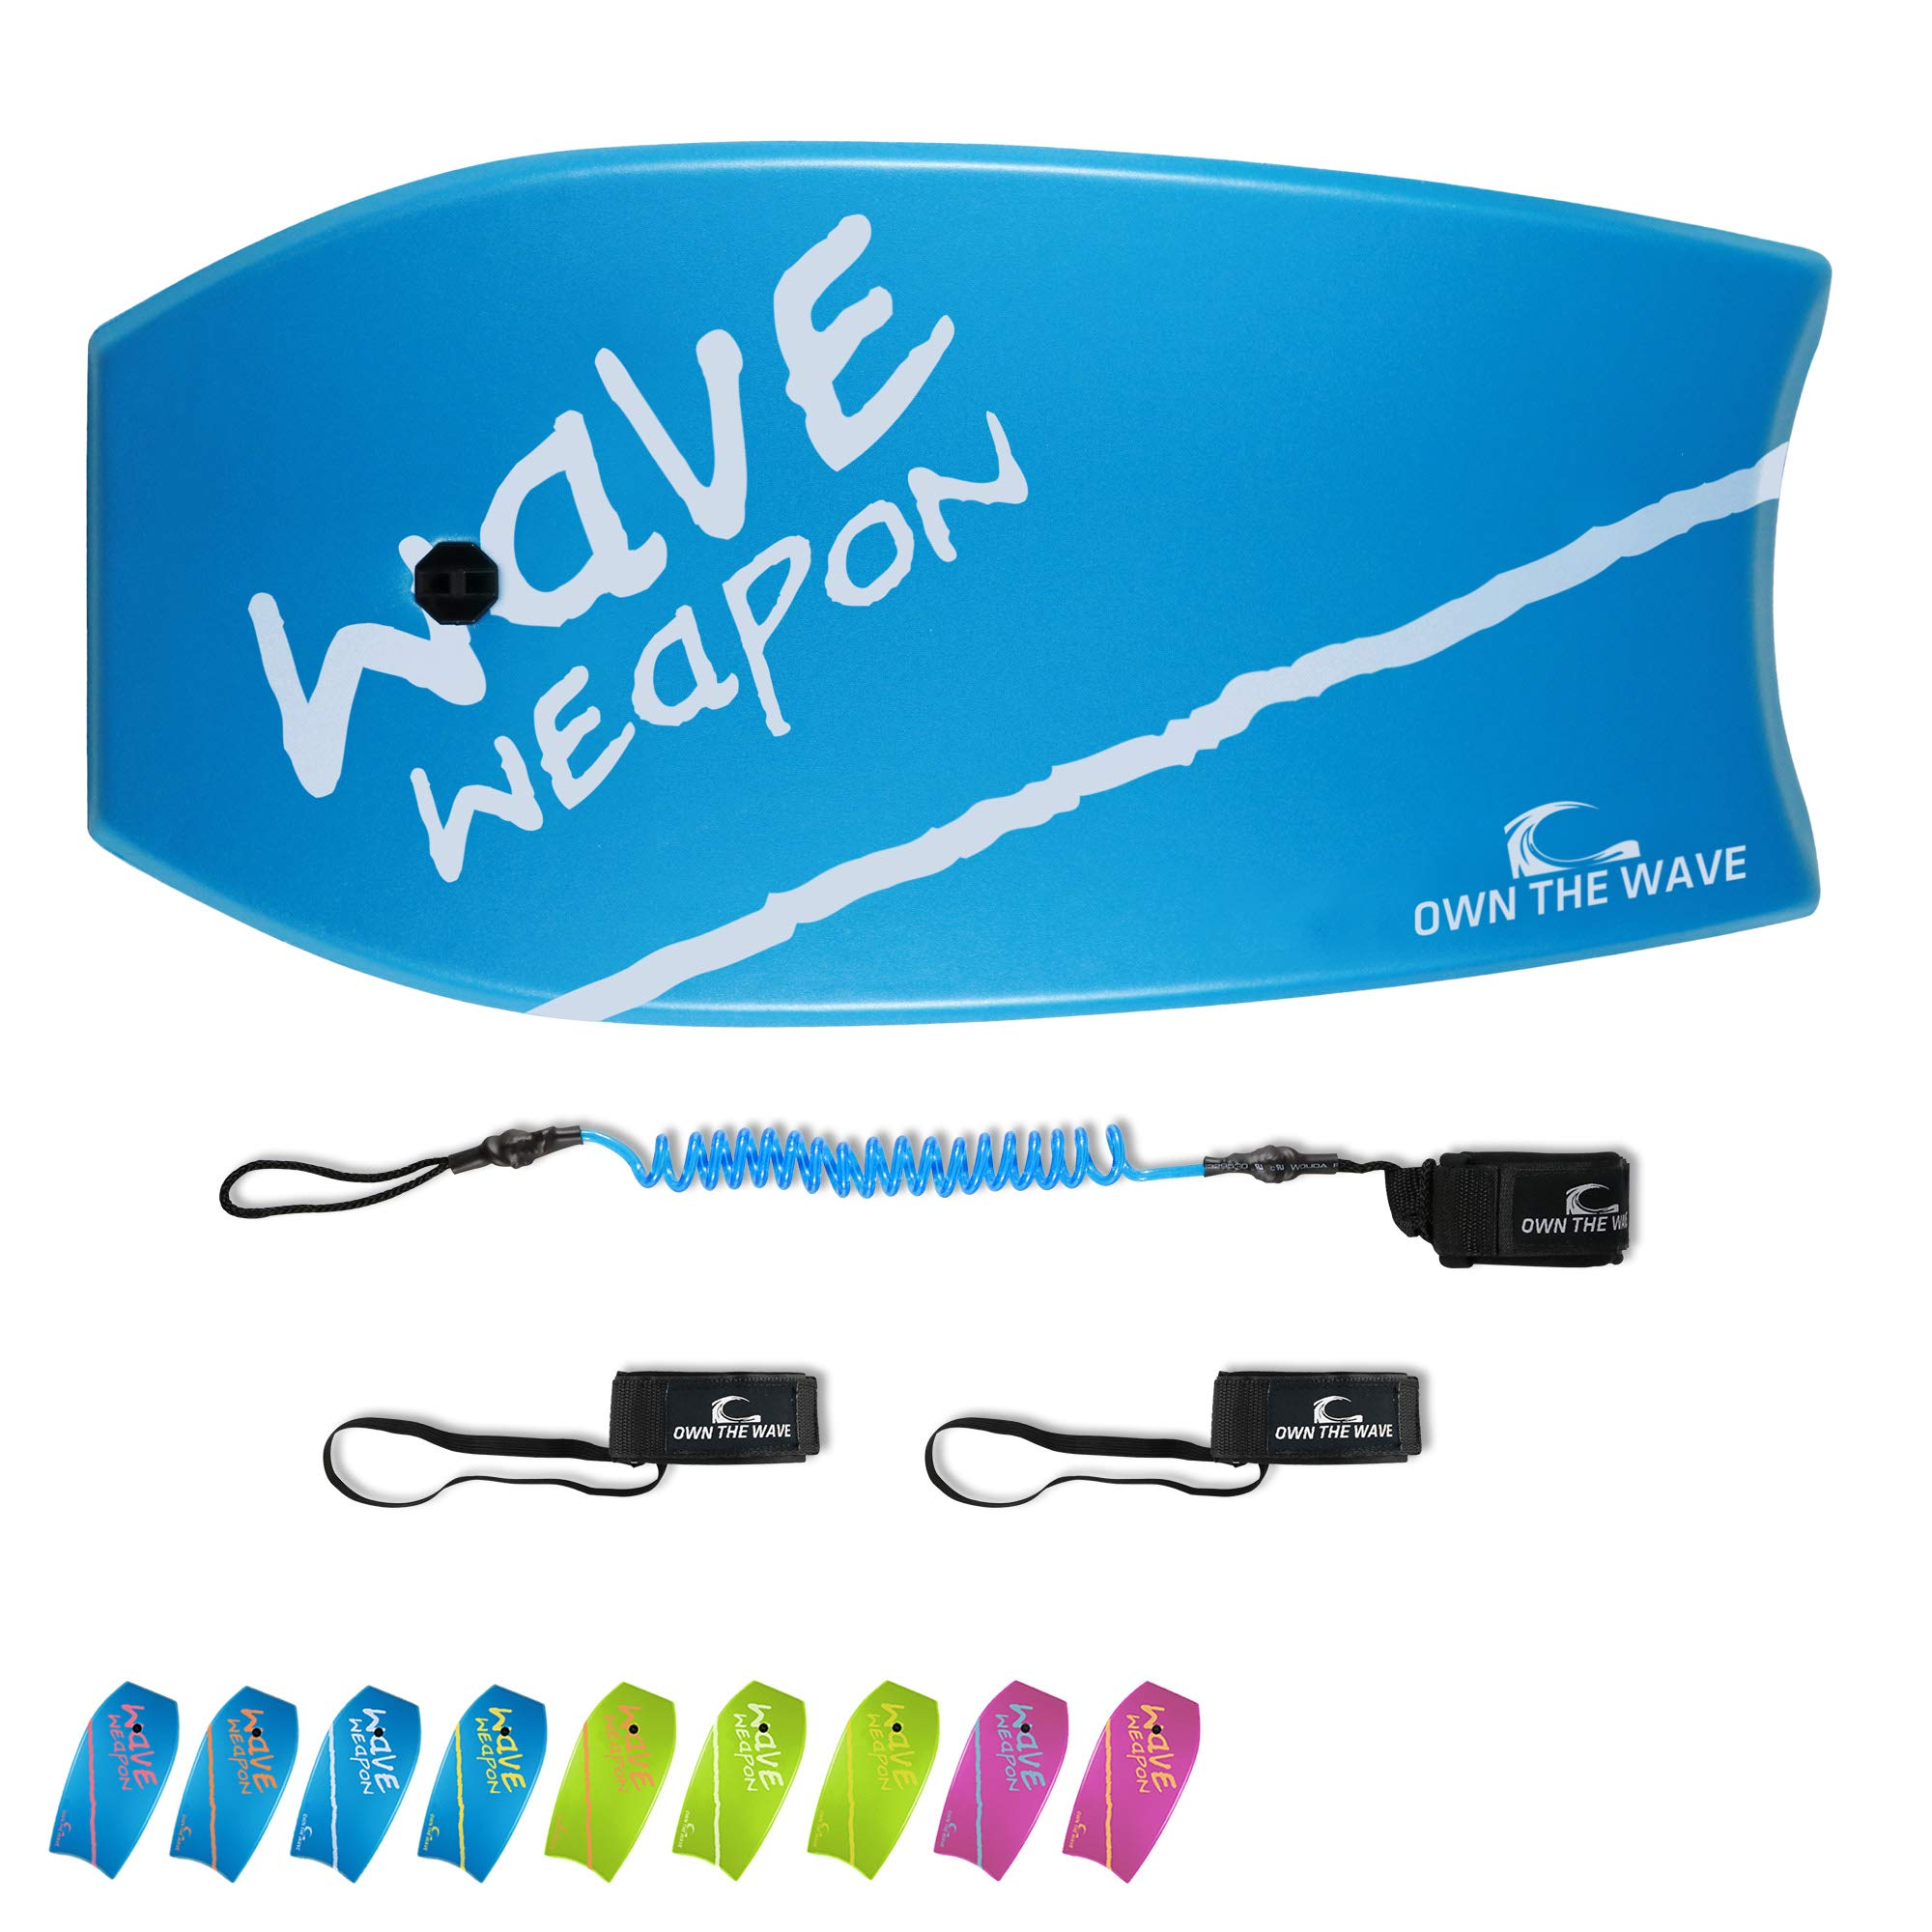 Own the Wave 33 Inch Body Board for Adults and Kids - HDPE Slick Bottom & EPS Core - Light Weight Bodyboard Perfect for Surfing - Comes with Coiled Leash and Swim Fin Tethers (Blue & White)